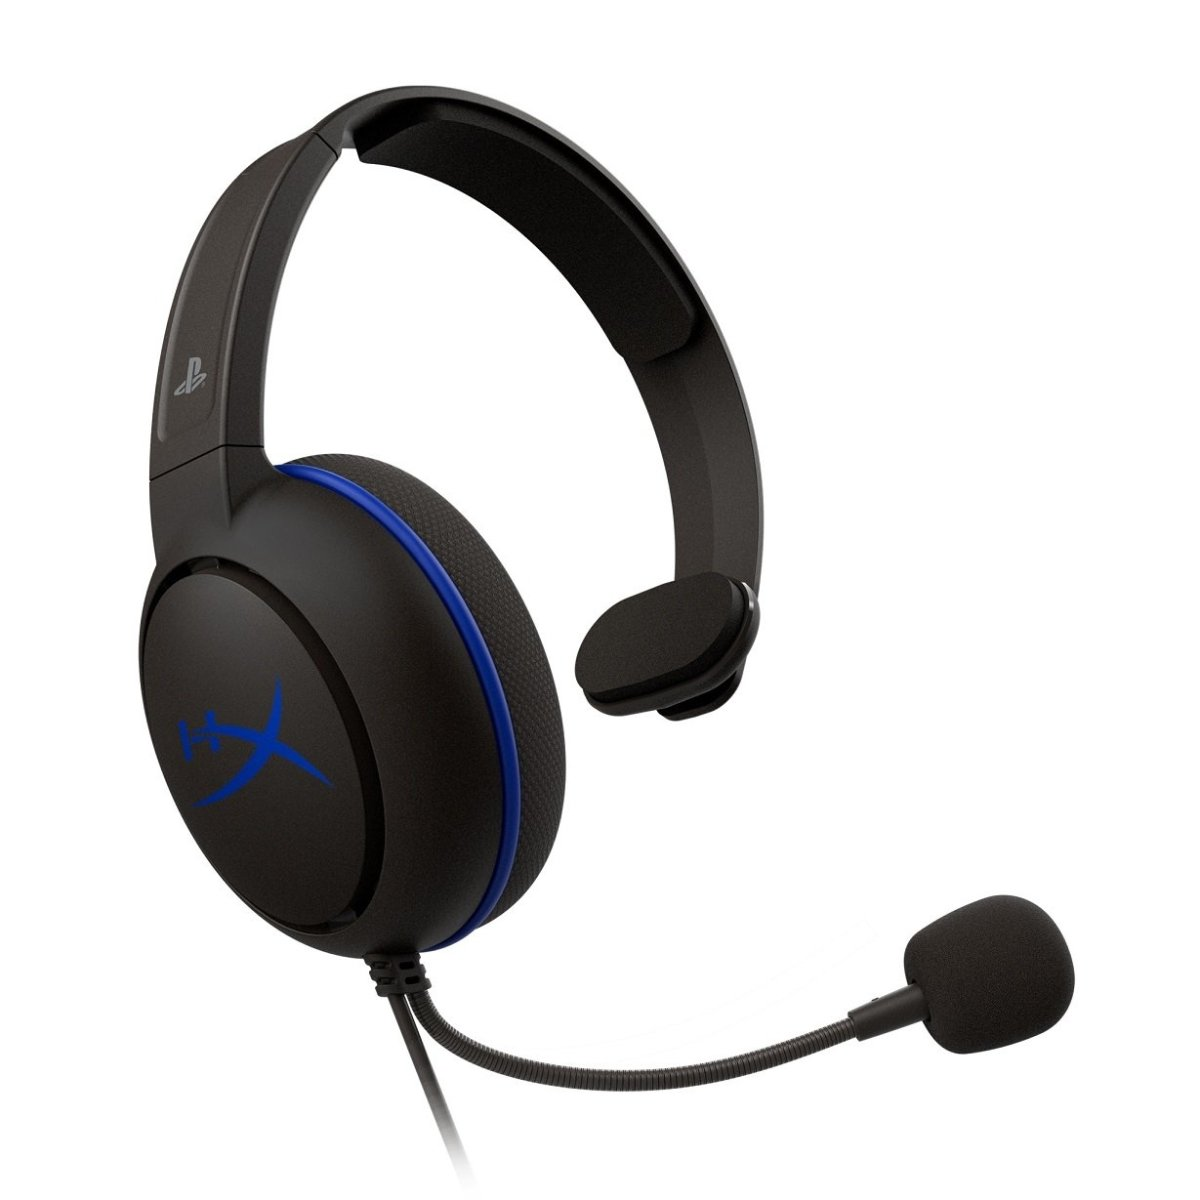 Audífono Gamer HyperX Cloud Chat PS4 Pro - Mundo Electro